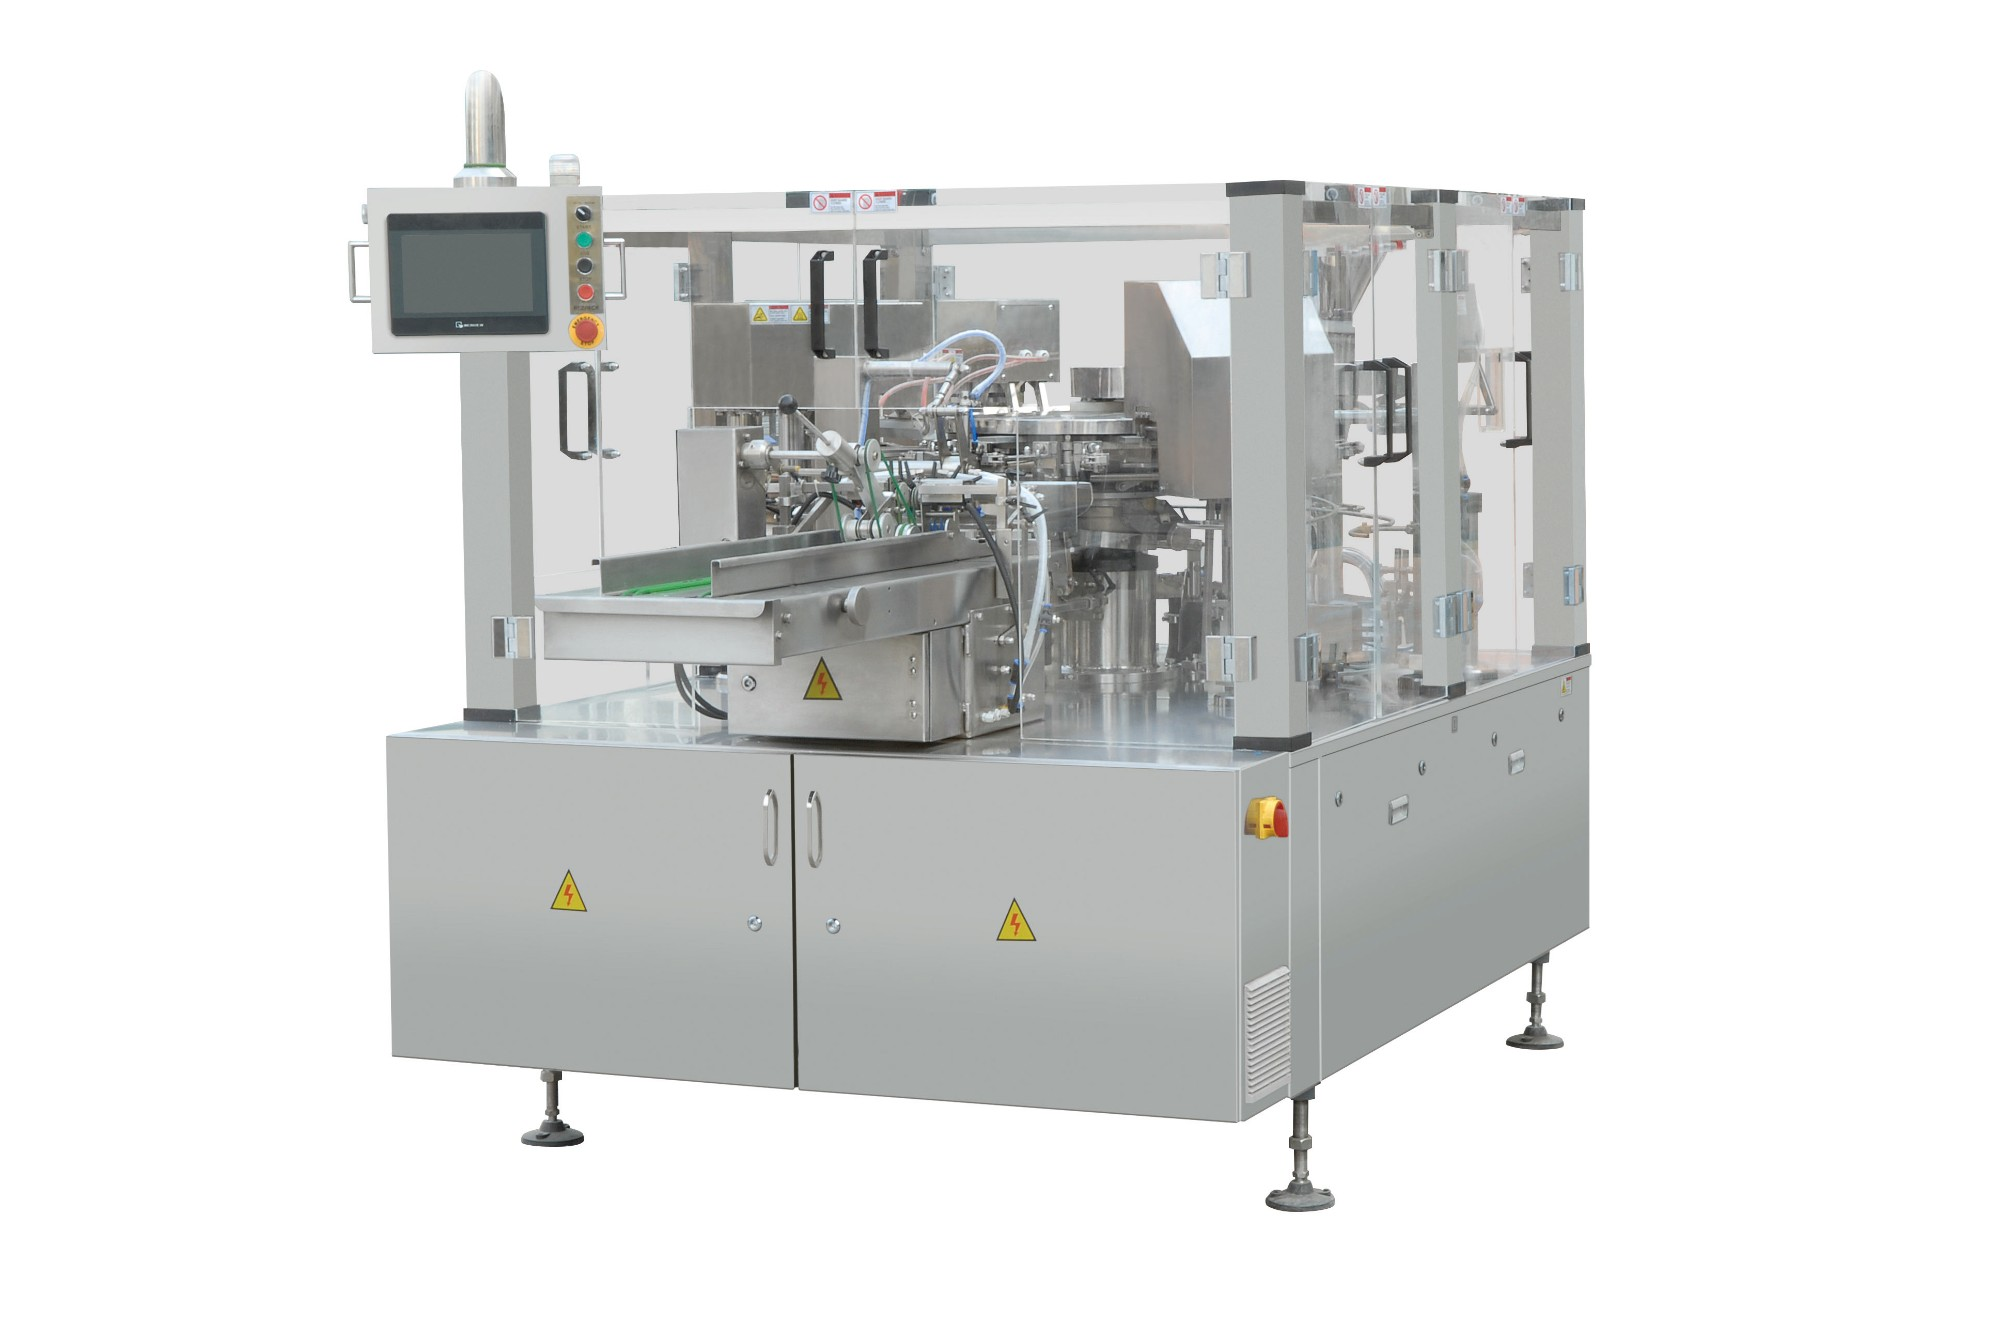 Standing Bag Cocoa Powder Packaging Machine Manufacturers, Standing Bag Cocoa Powder Packaging Machine Factory, Supply Standing Bag Cocoa Powder Packaging Machine